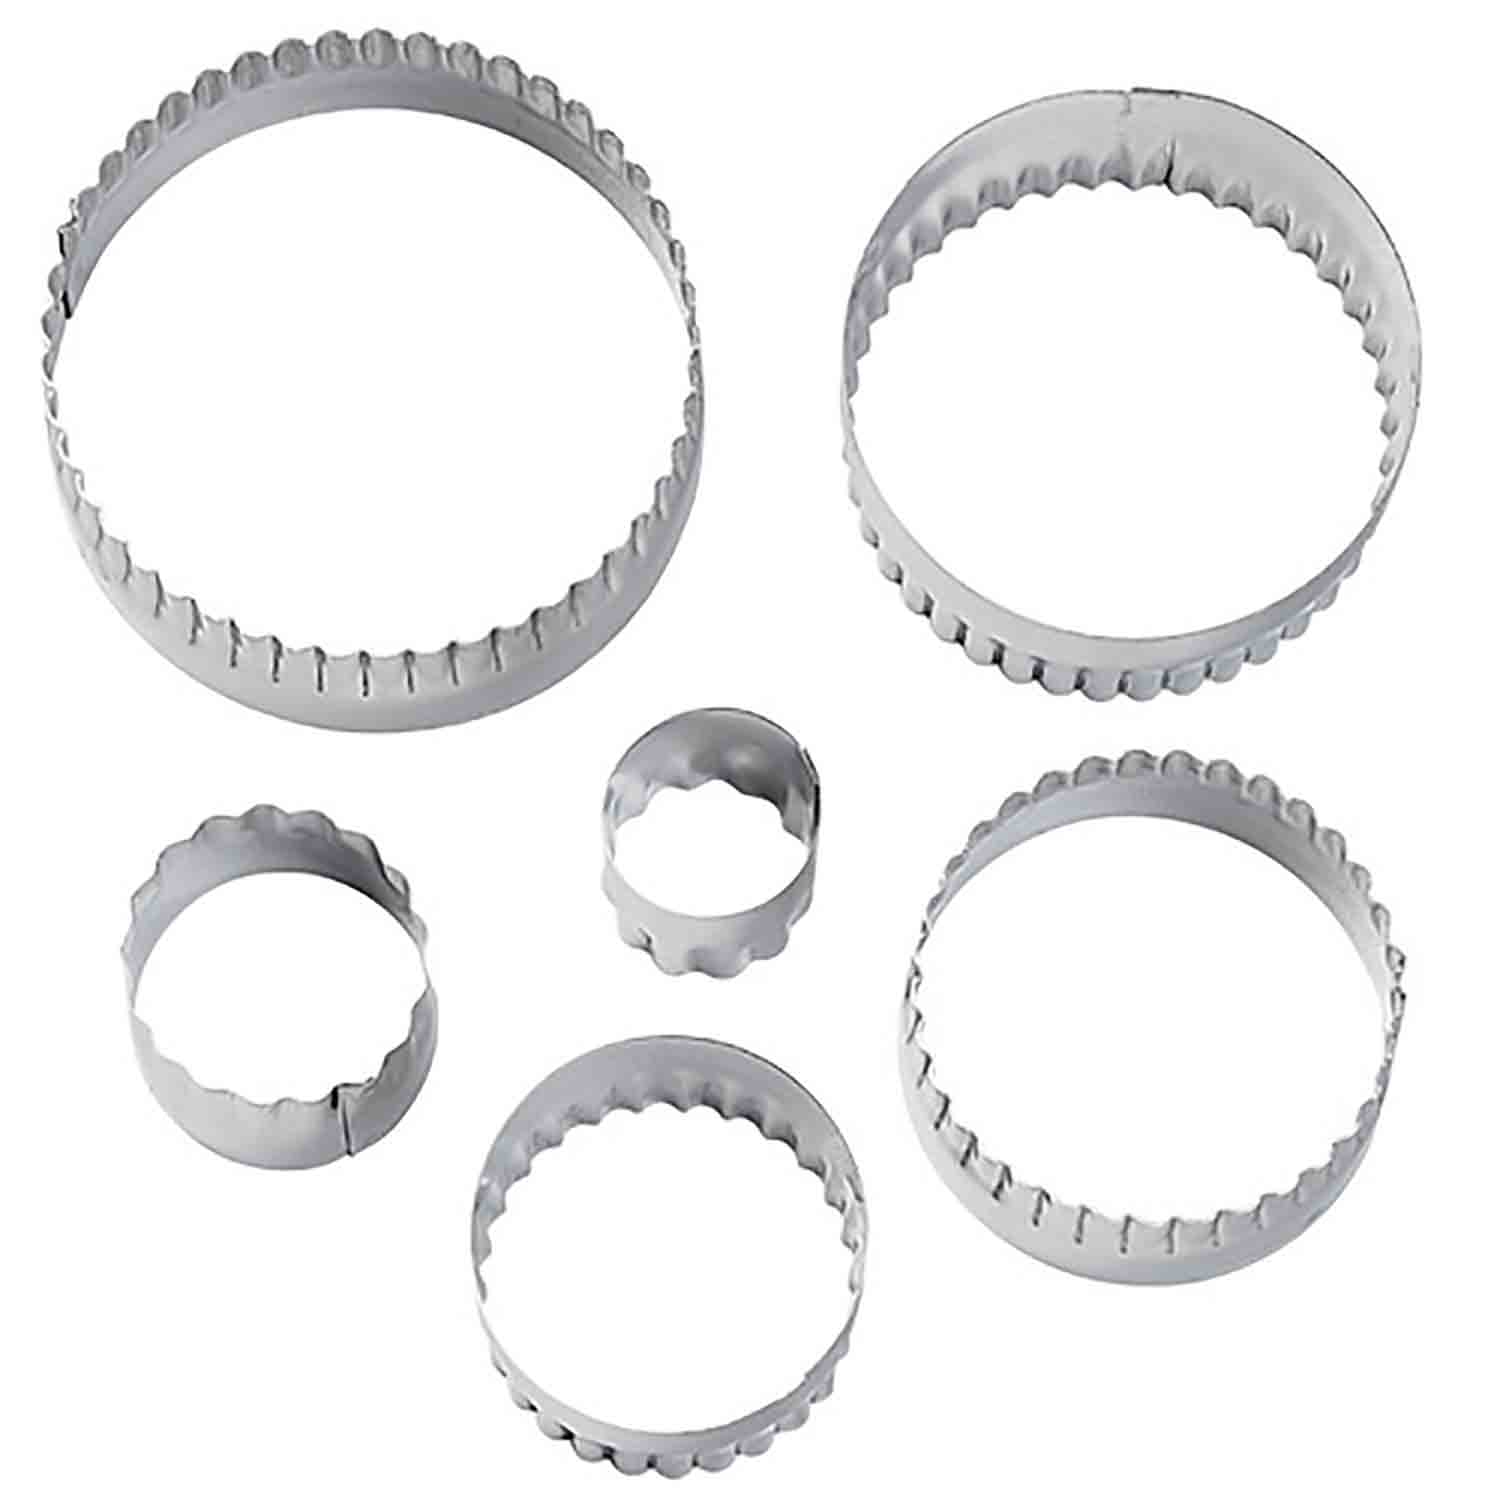 Straight and Fluted Round Cutter Set